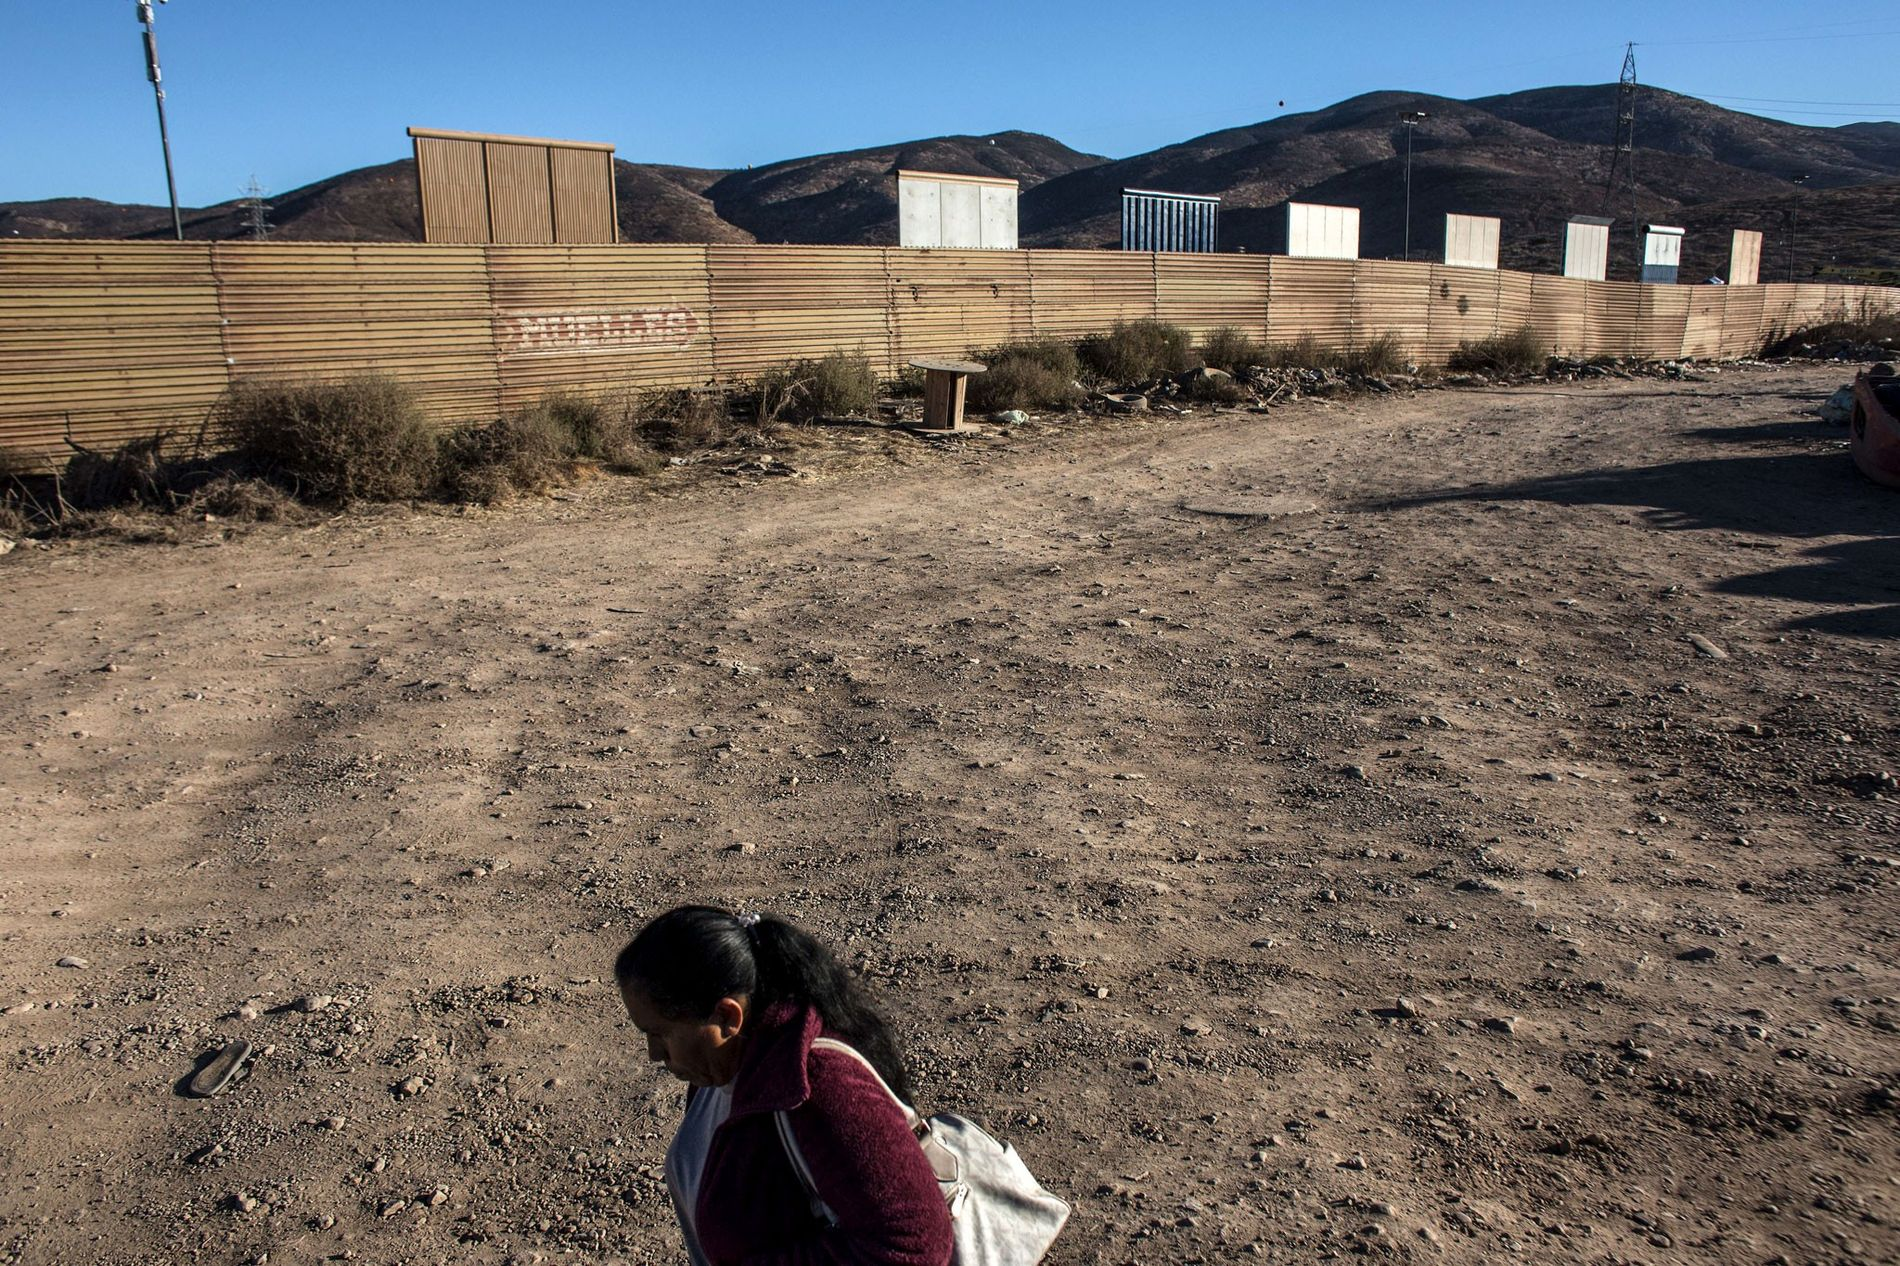 Above is the eighth prototype of President Donald Trump's U.S.-Mexico border wall, under construction near San ...